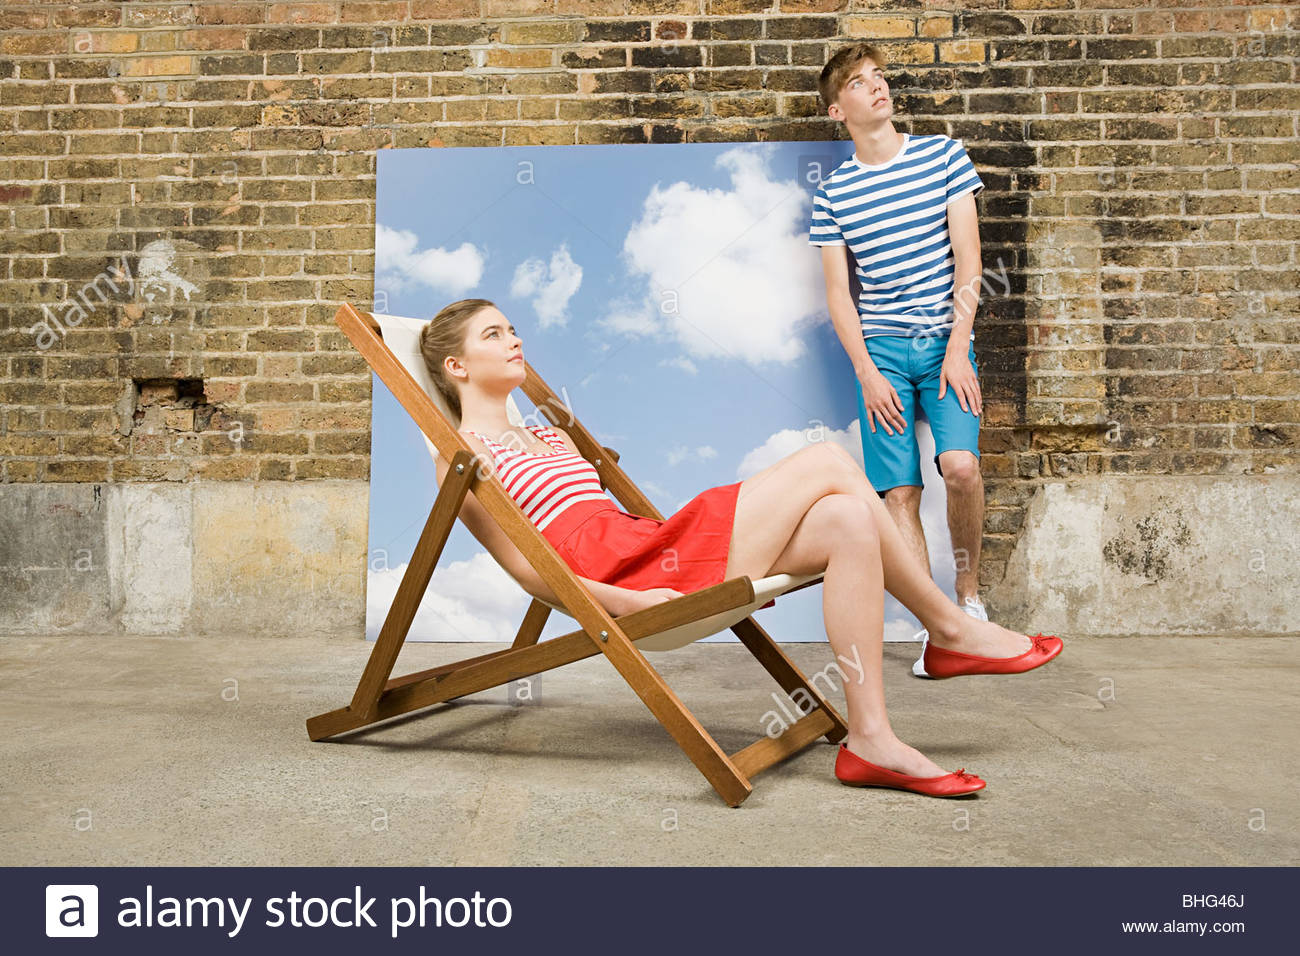 Teen couple with deckchair and sky backdrop - Stock Image